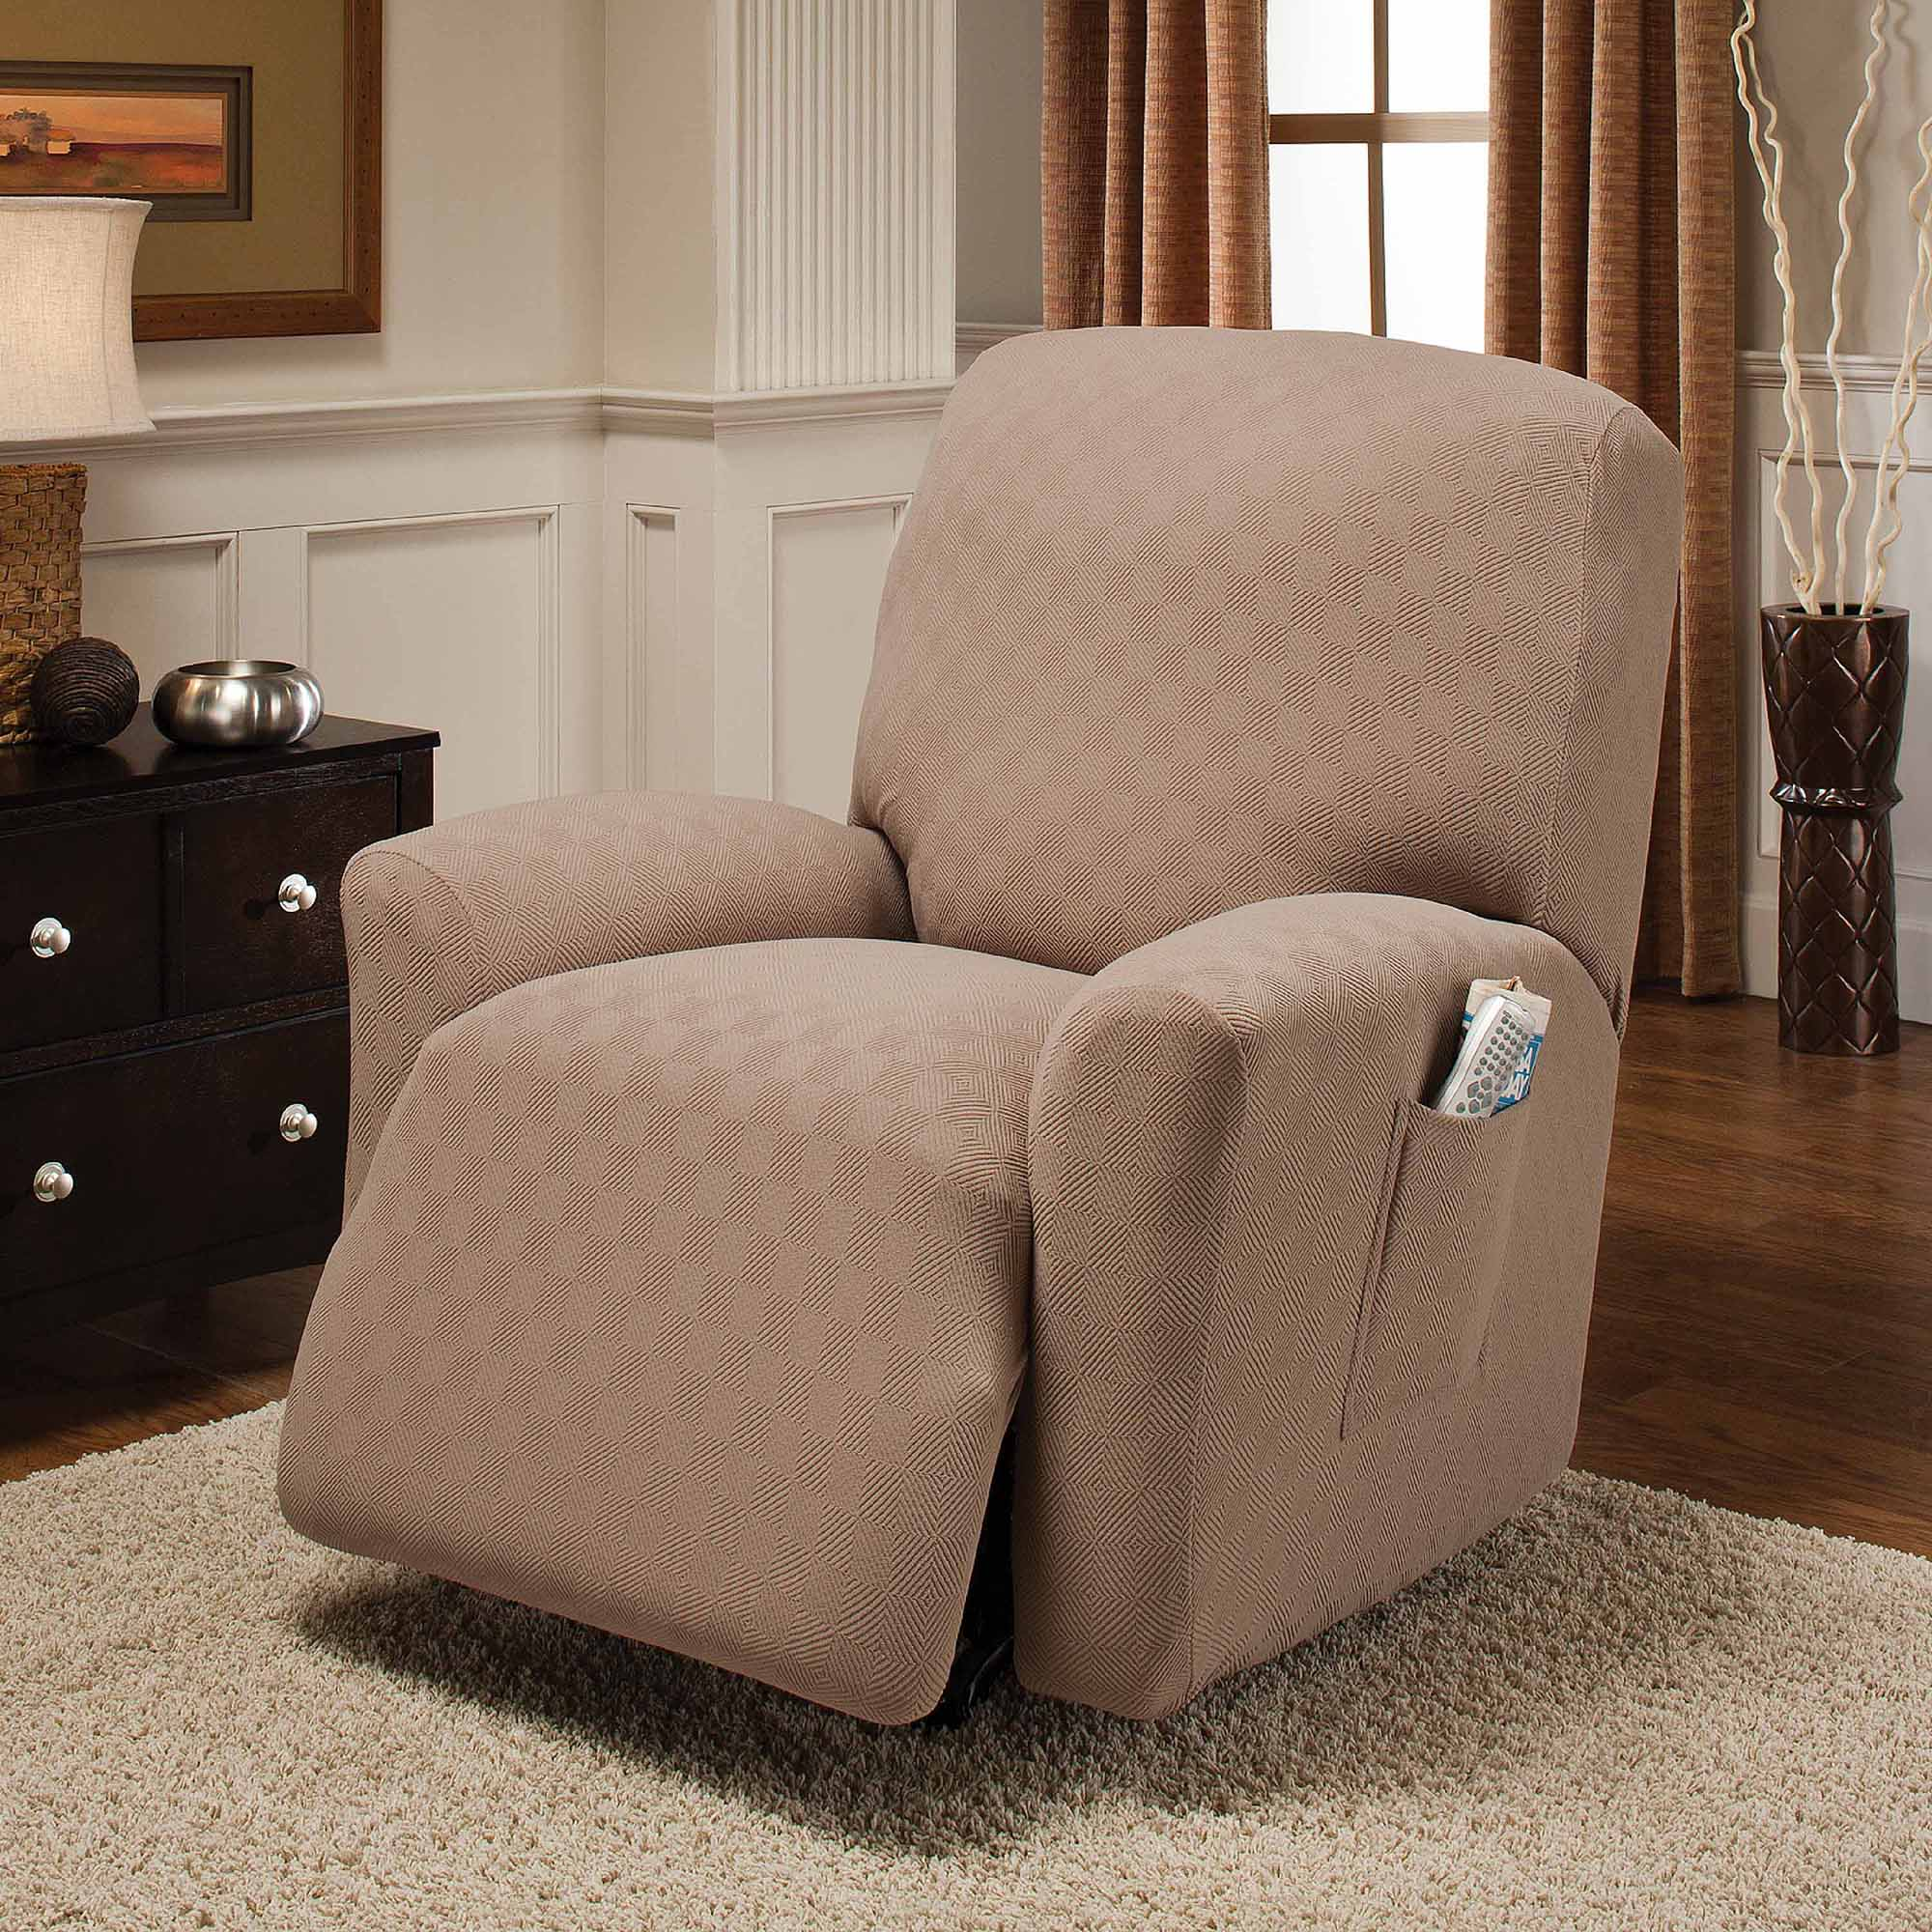 Stretch Sensations Newport Slipcover